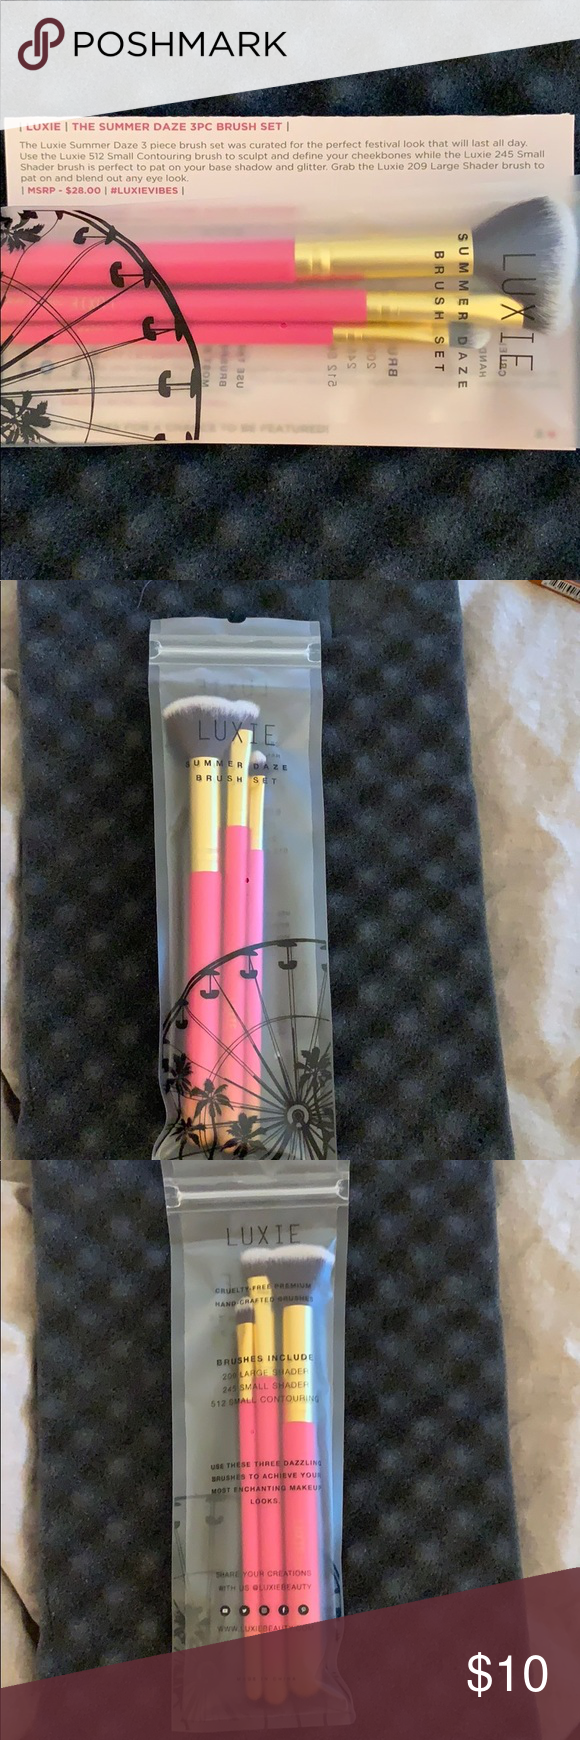 Luxie Summer Daze Brush Set Never opened or used! In